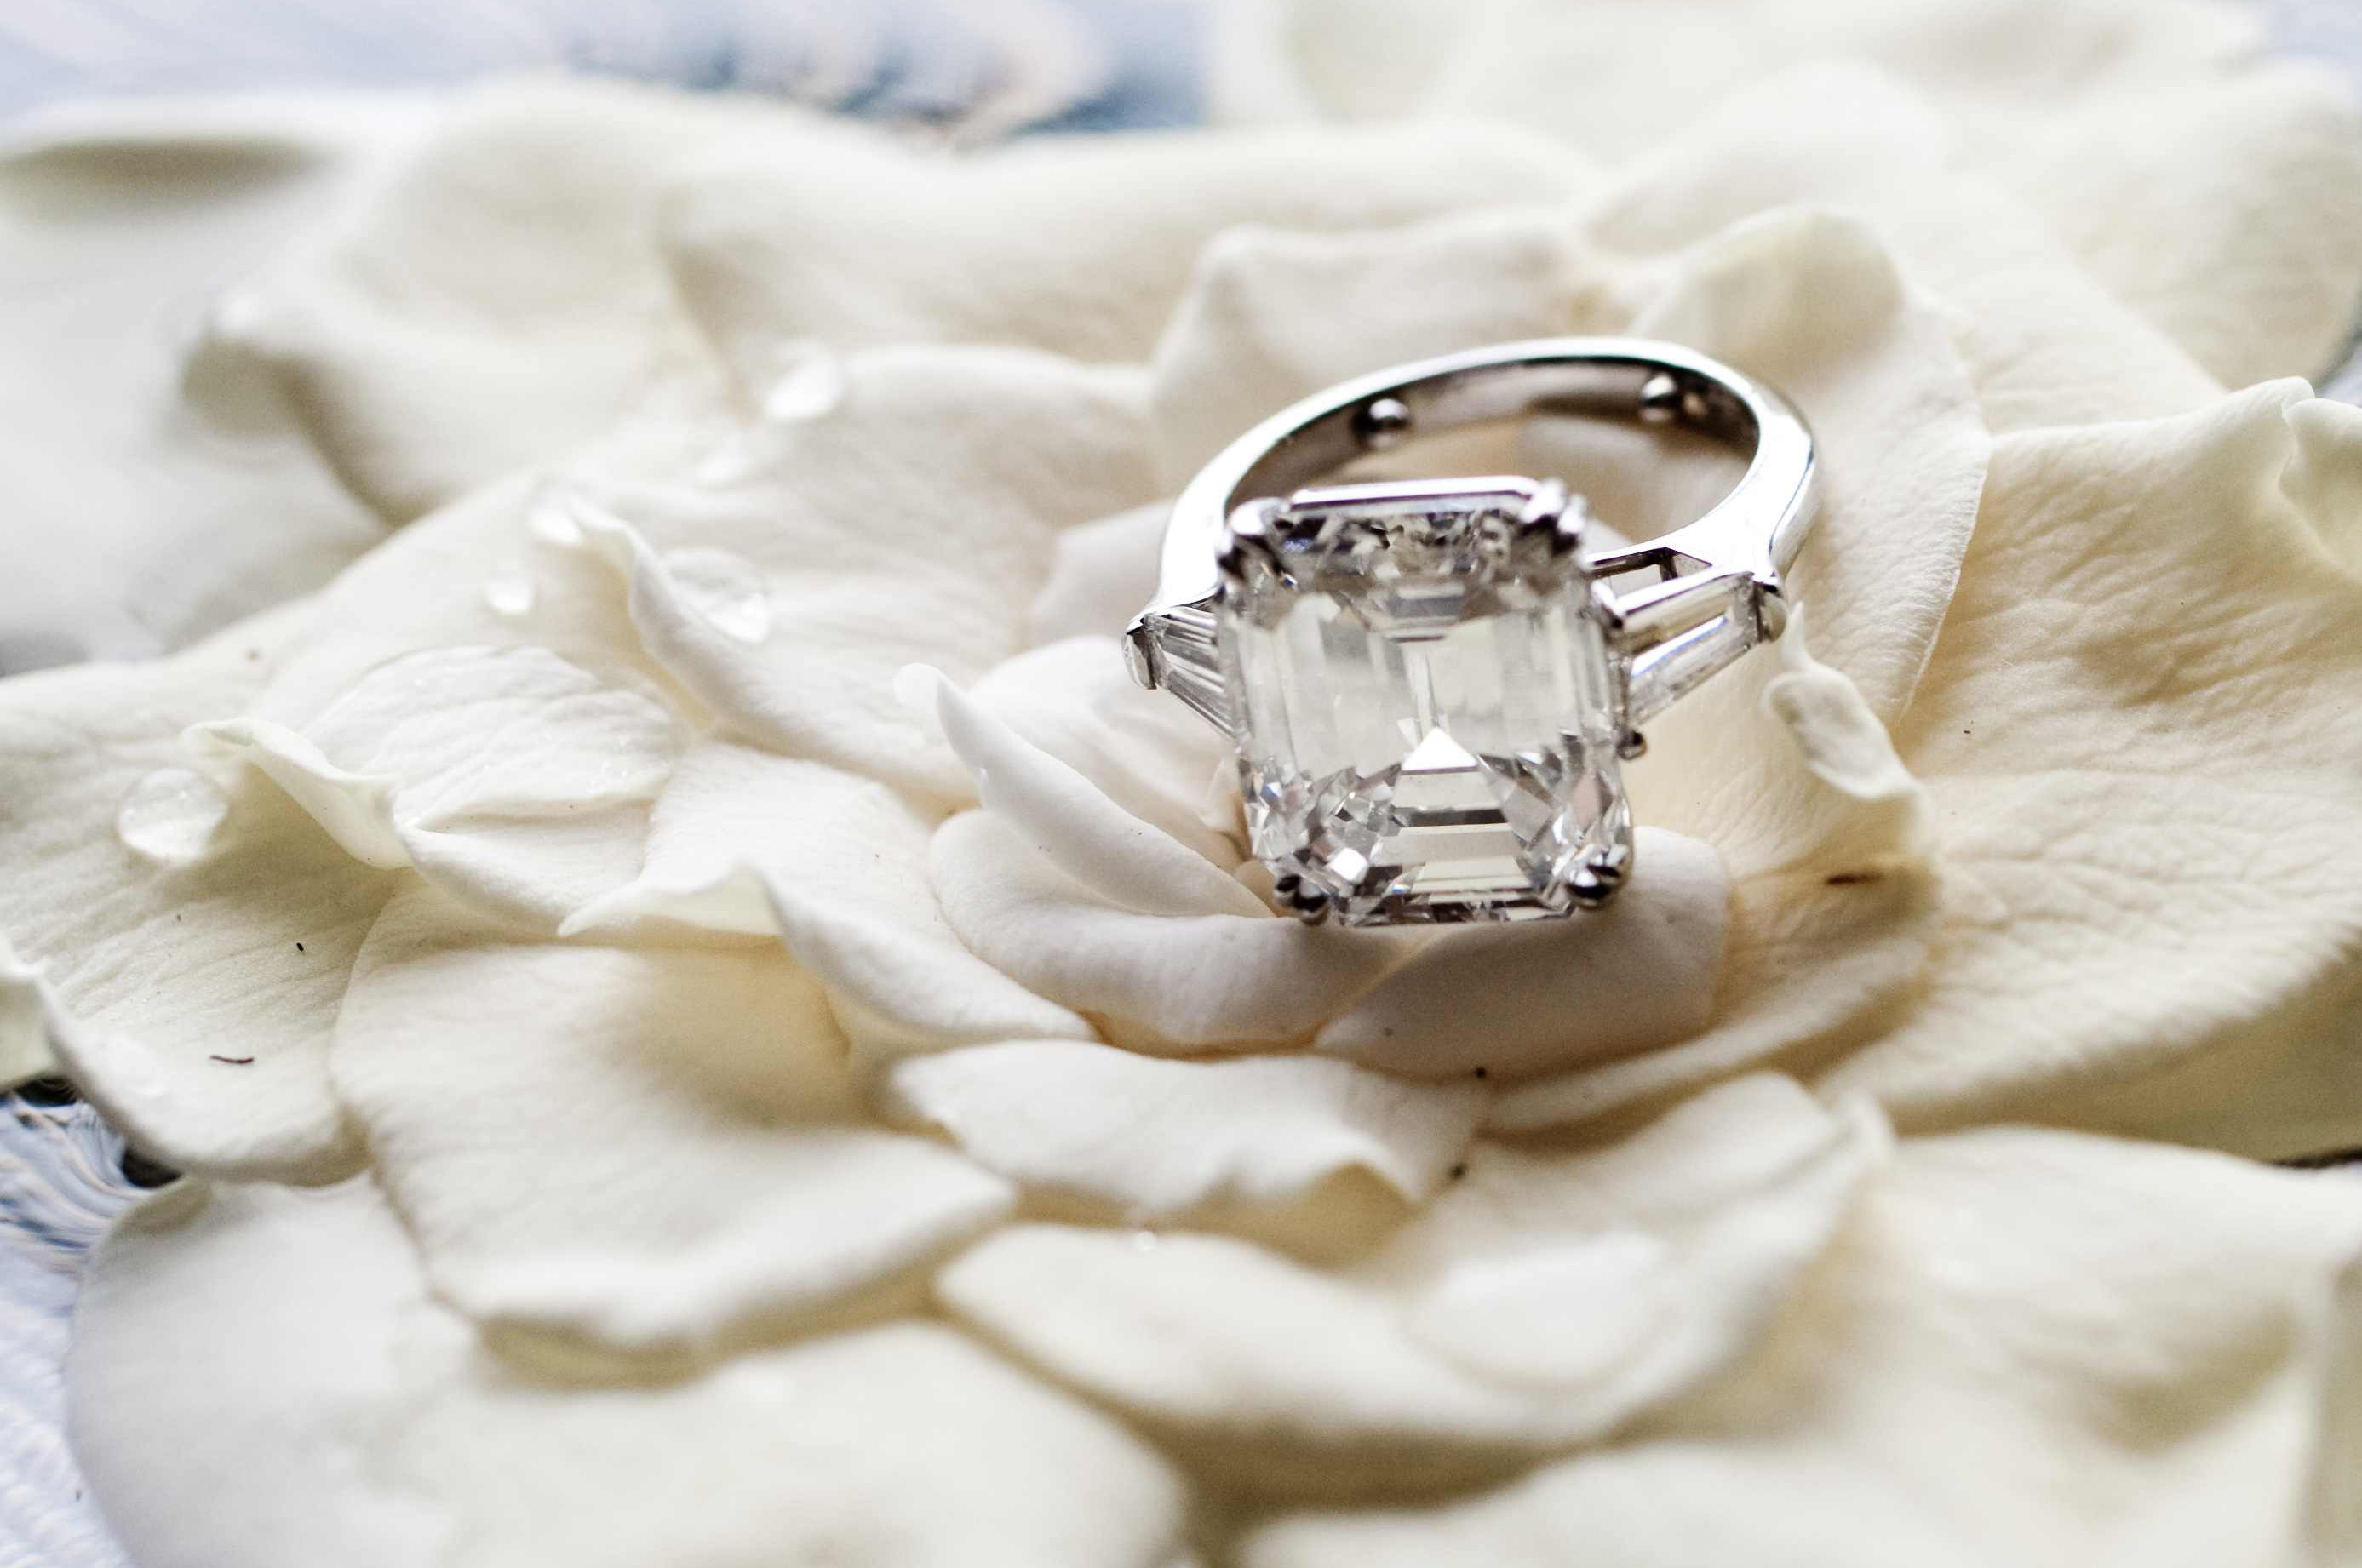 jesse plemons engaged to kirsten dunst engagement ring inspiration emerald diamond with baguette side stones